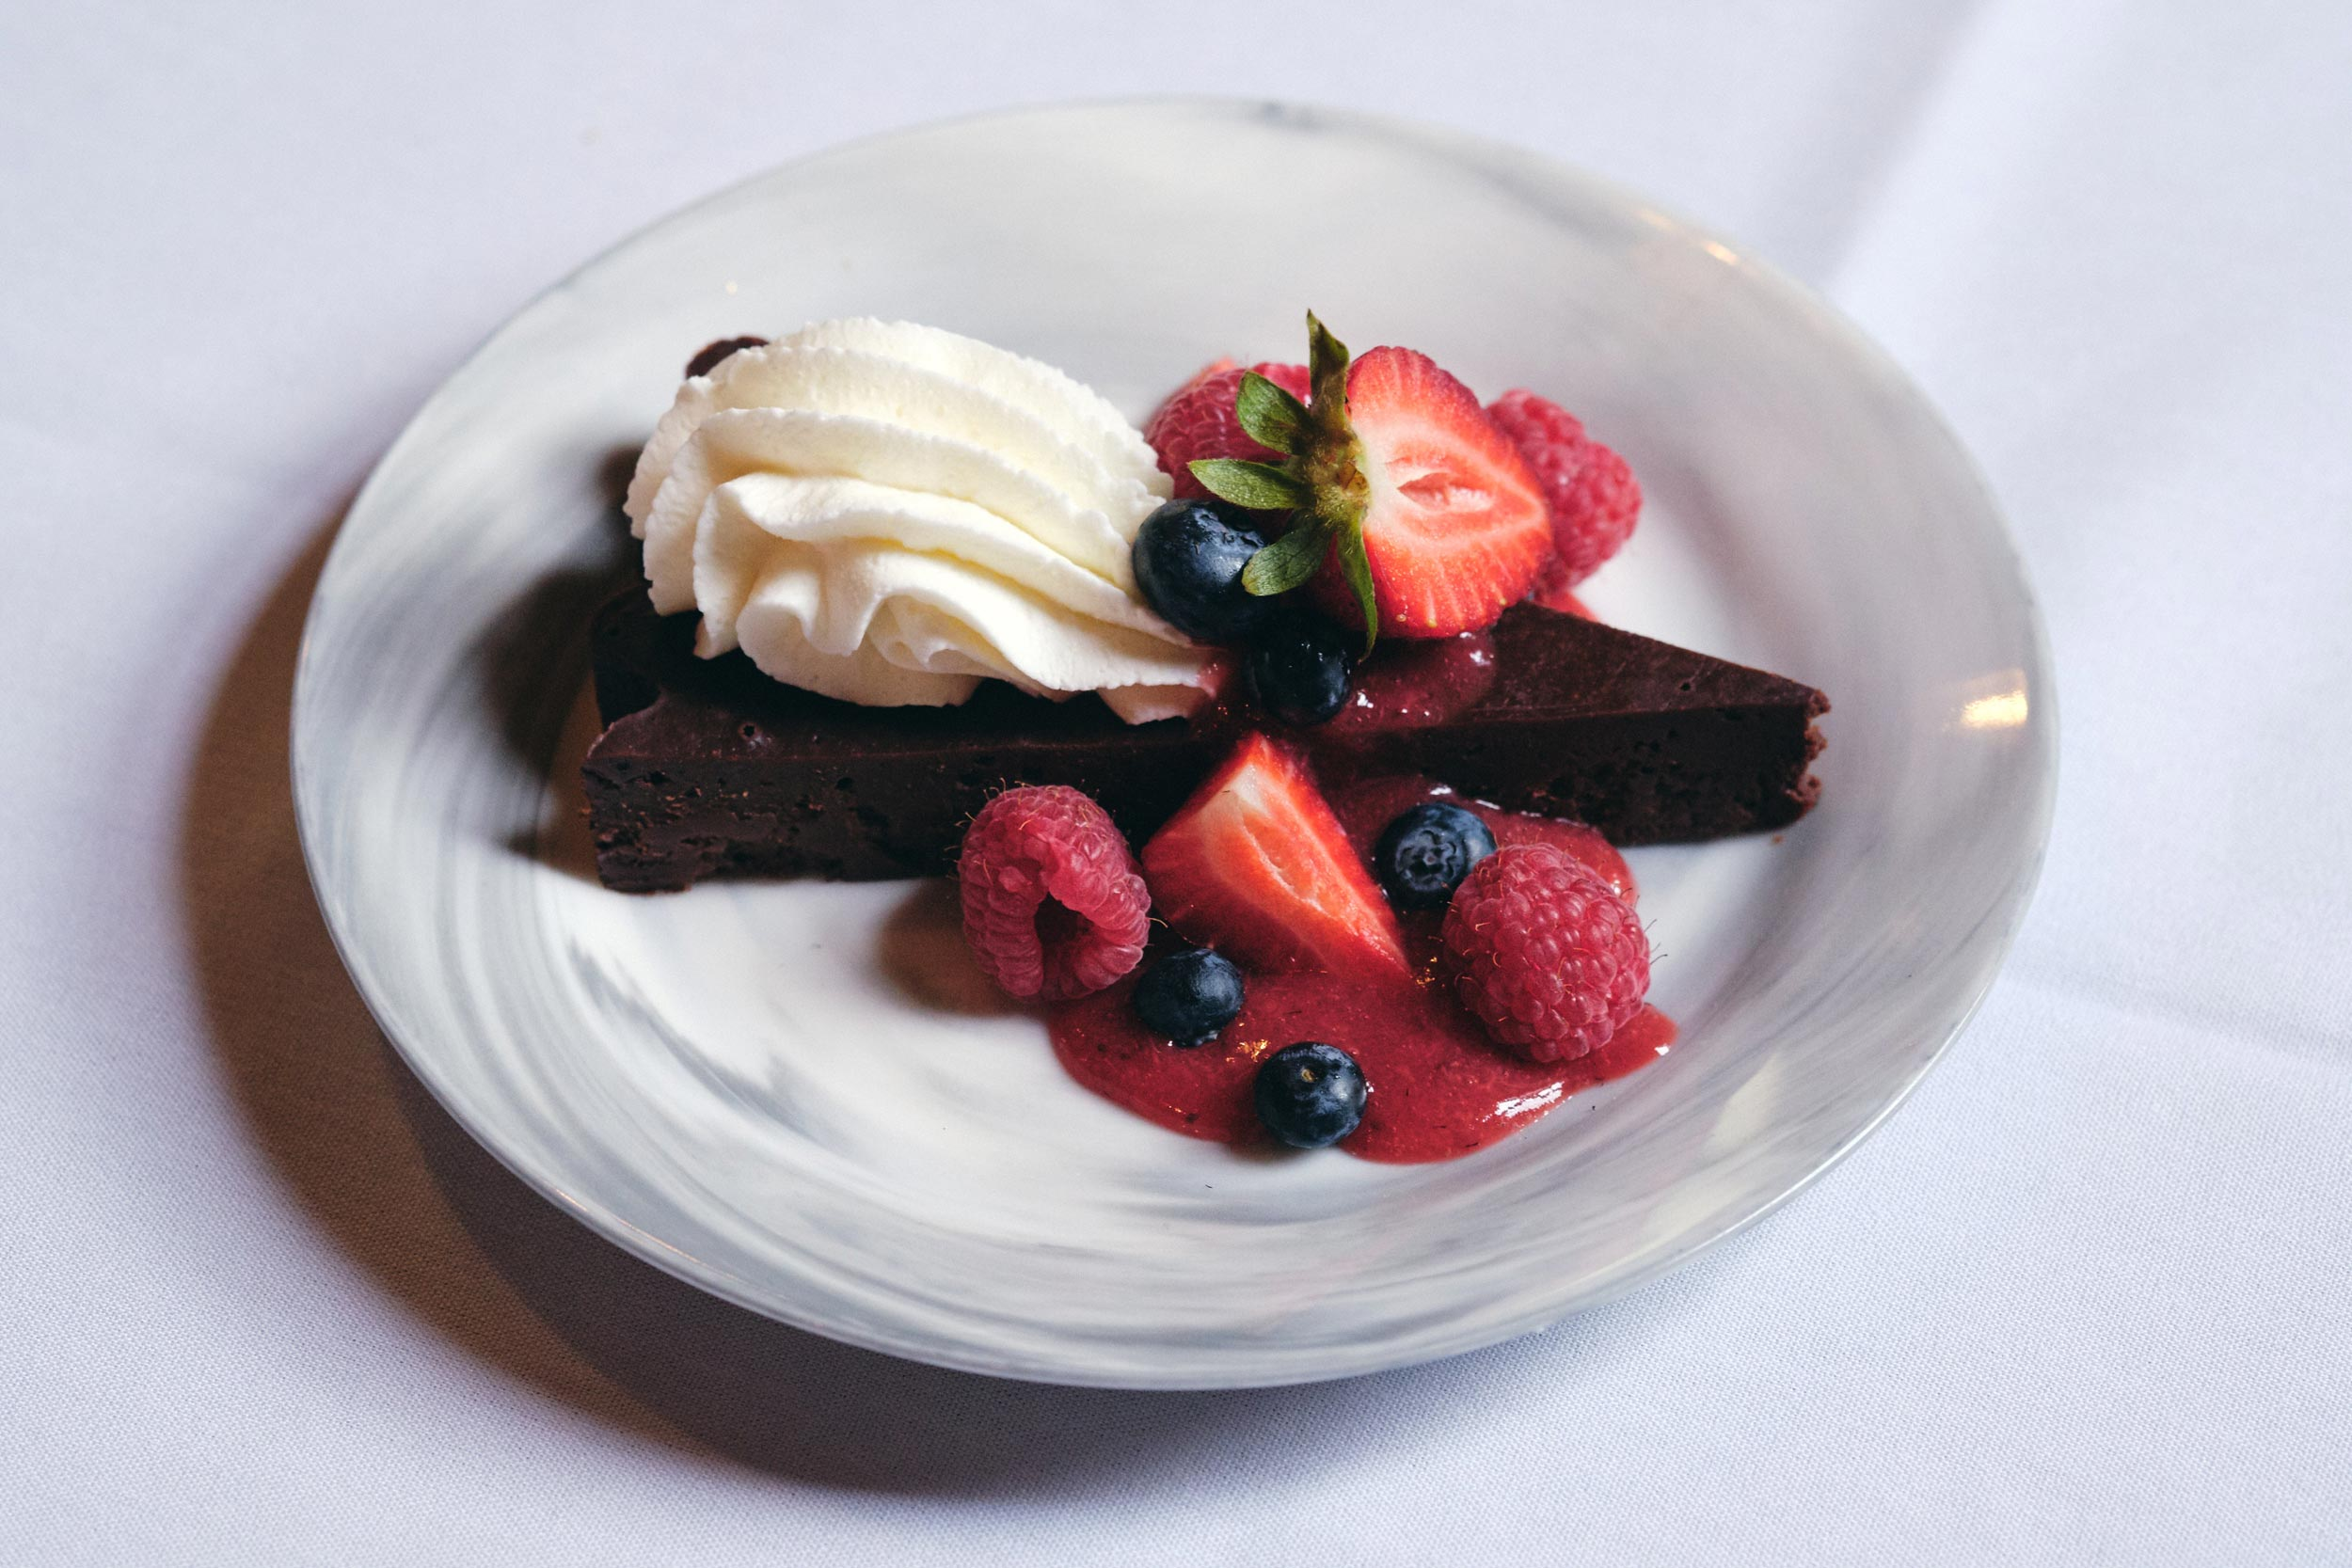 Rich Chocolate Cake with Berries and Whipped Cream